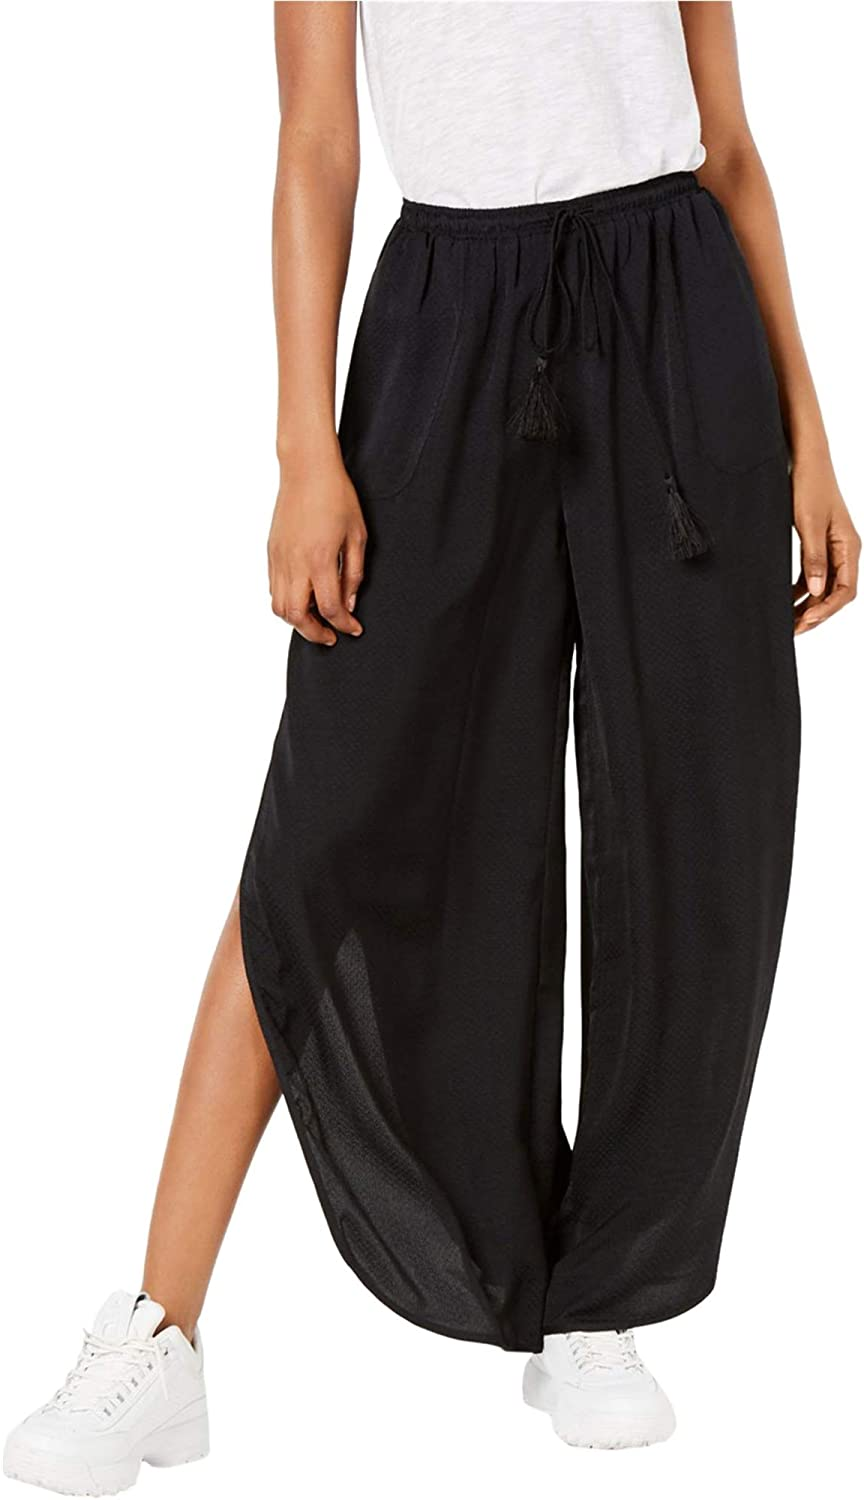 Free People Womens She's A Dime Casual Lounge Pants